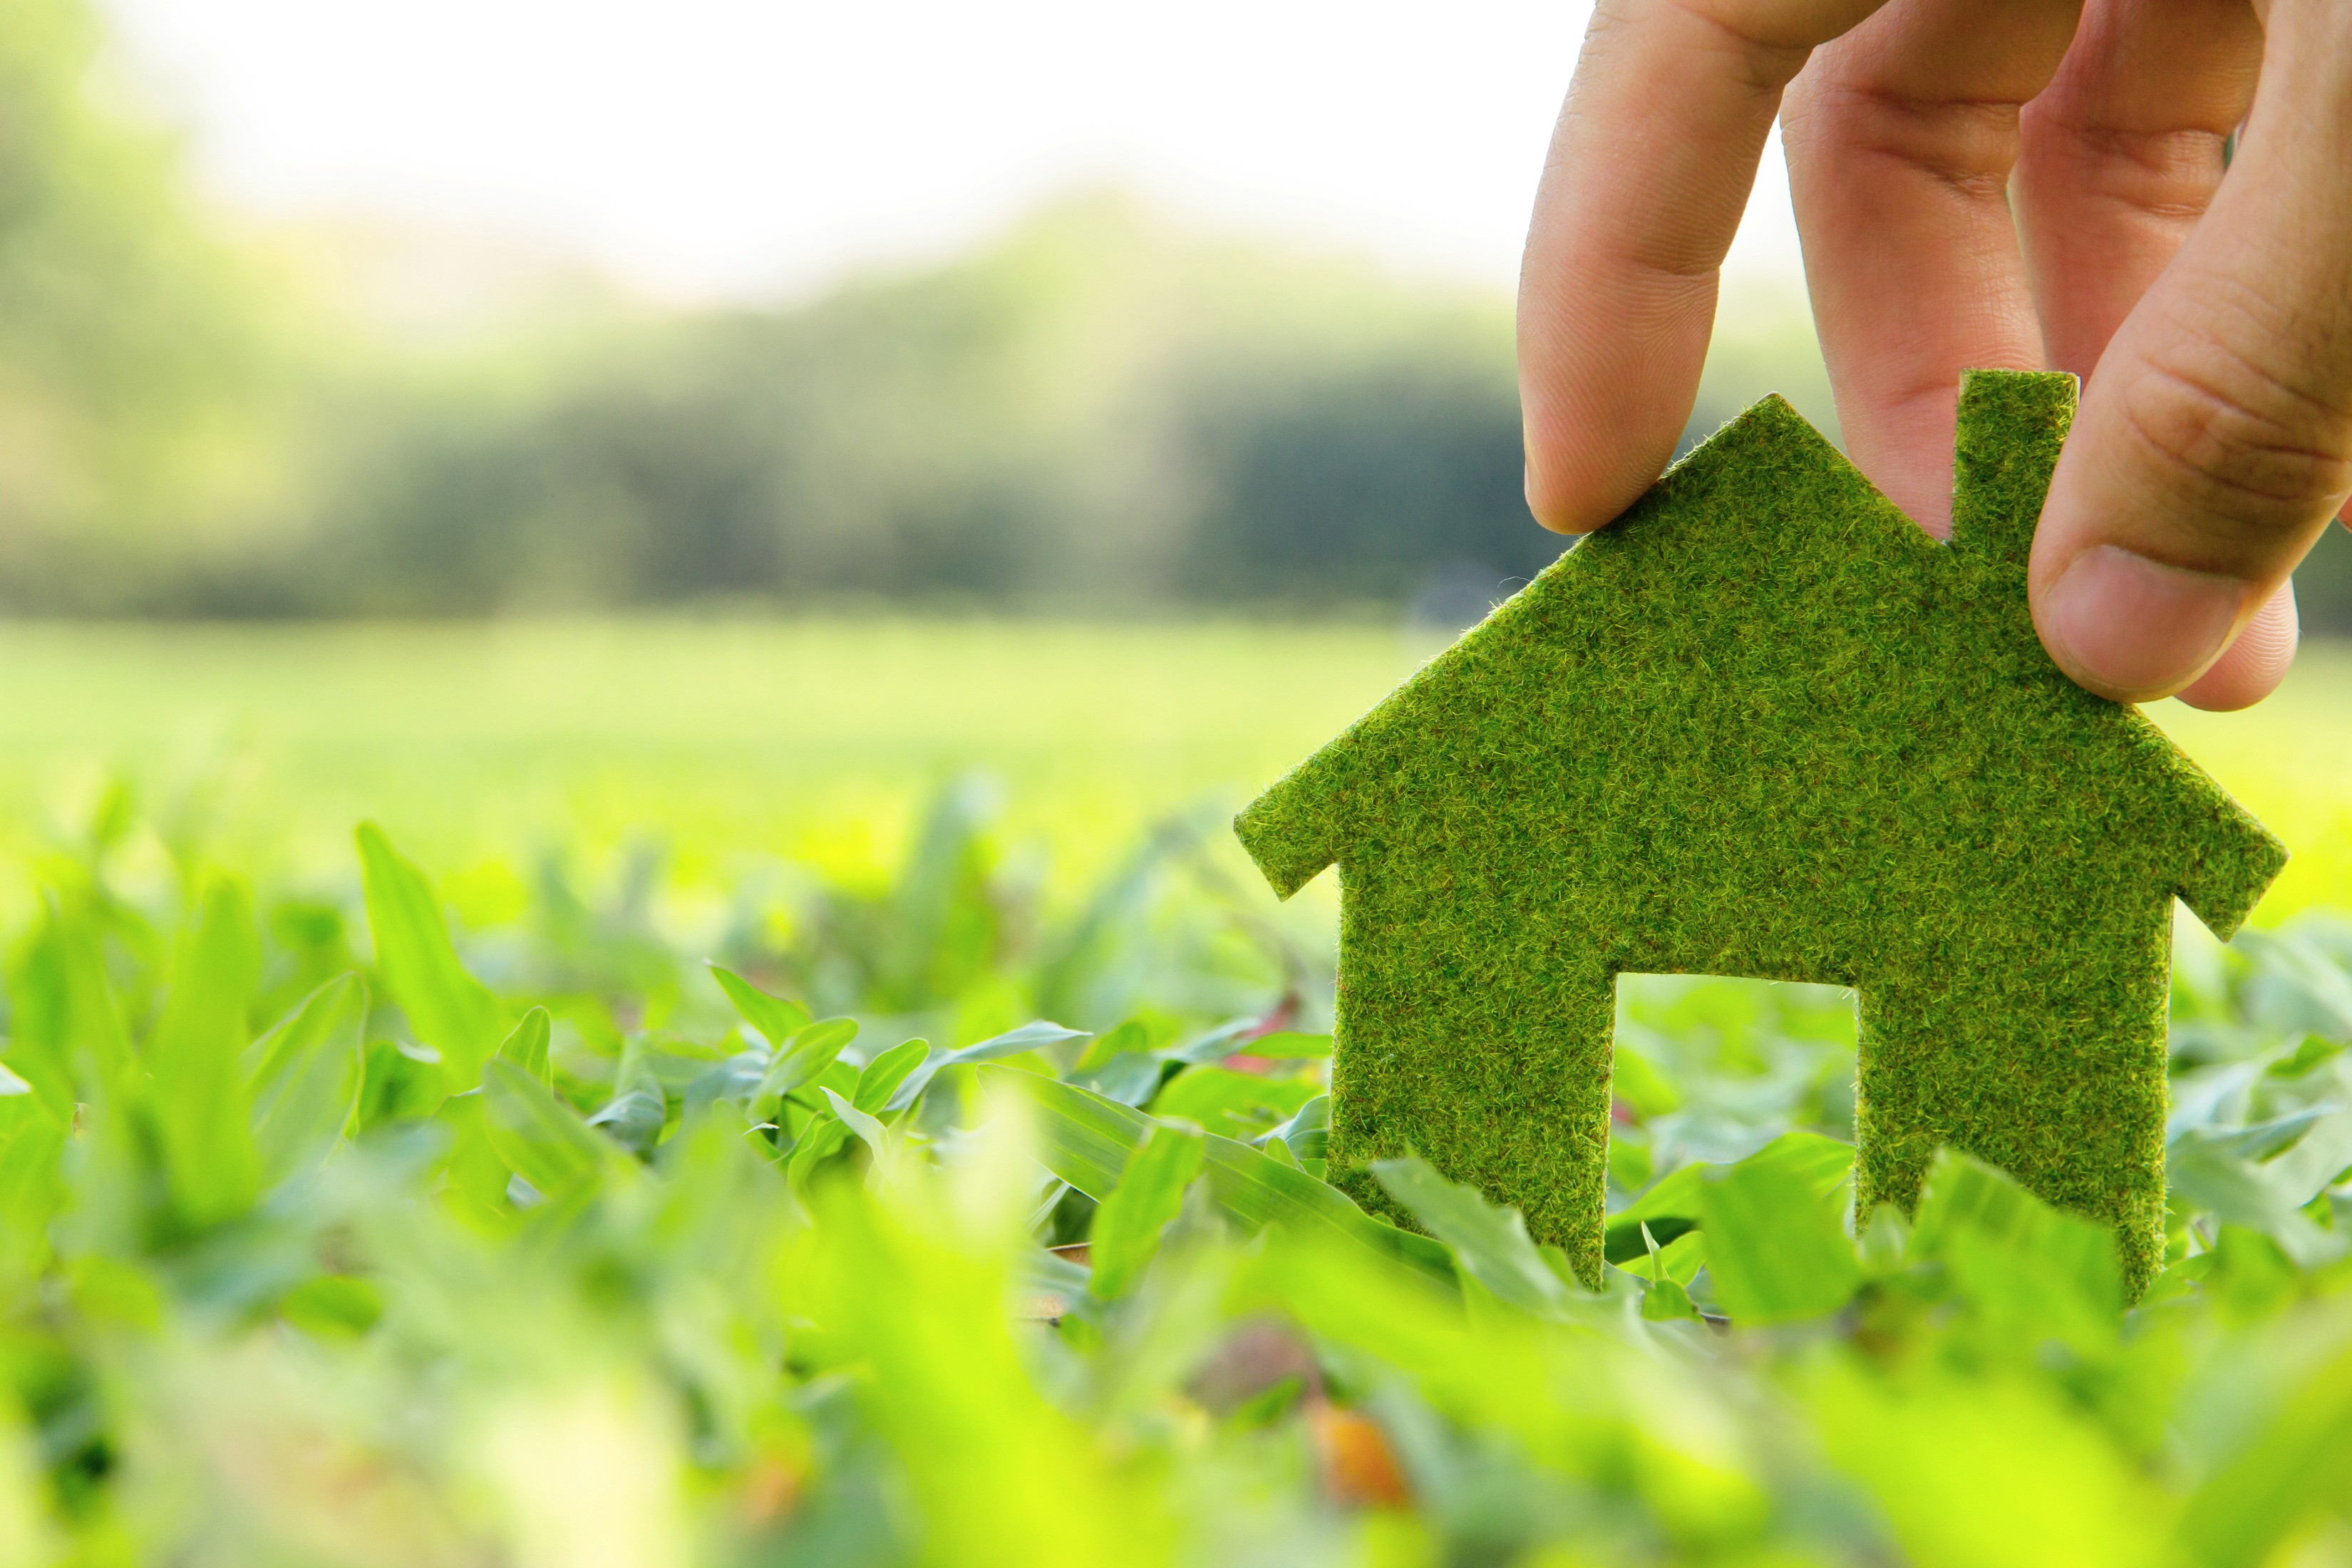 7 Eco-Friendly Updates for Your Home